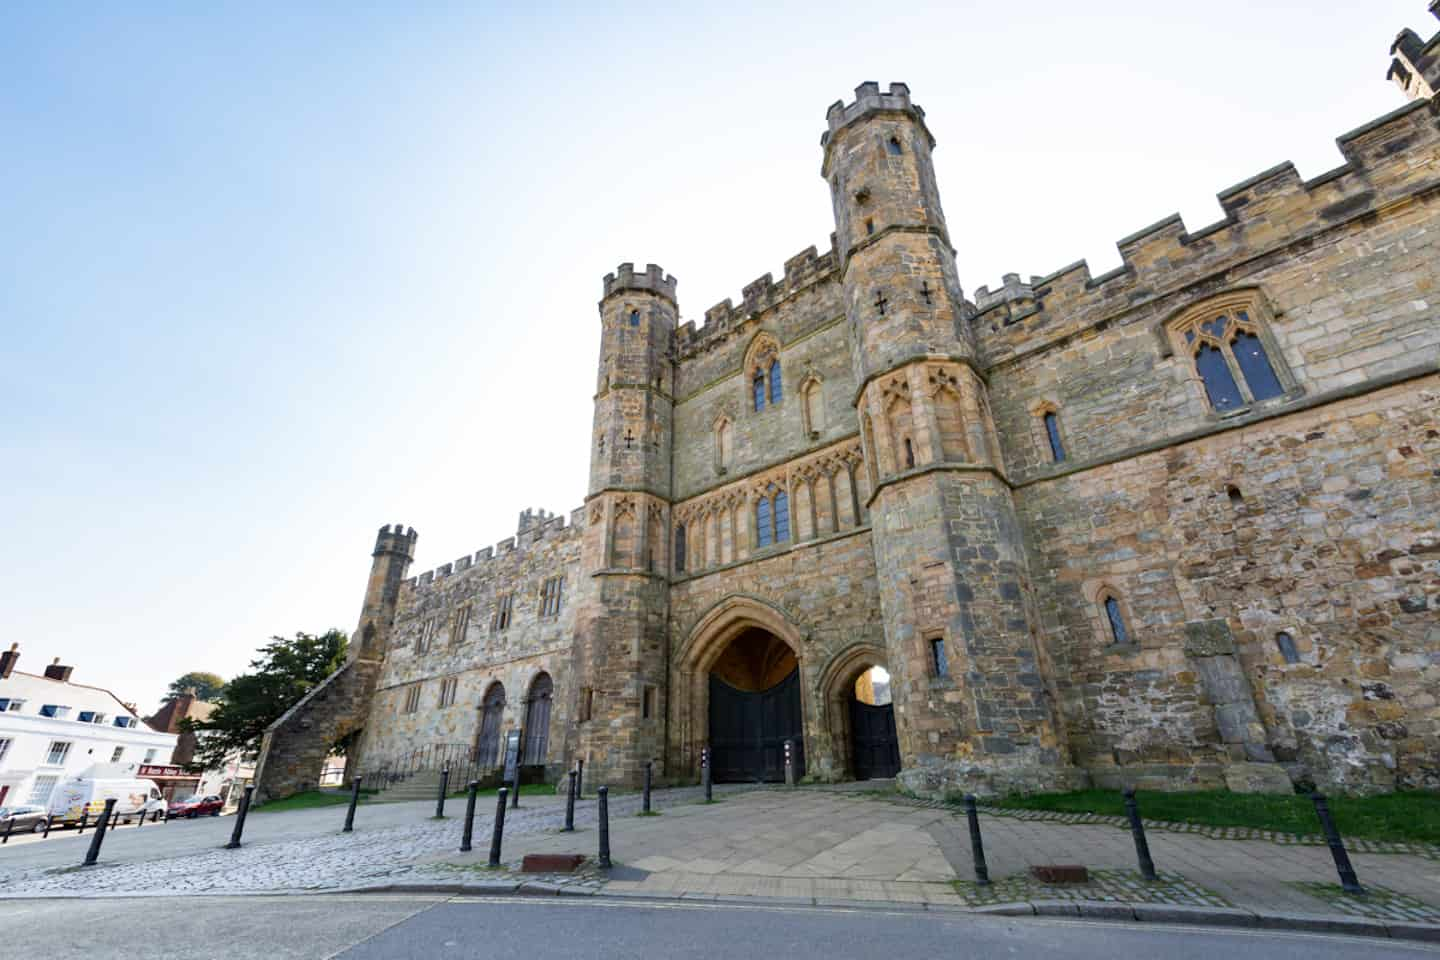 Dog-Friendly Days Out To Escape London For The Day - 1066 Battle of Hastings